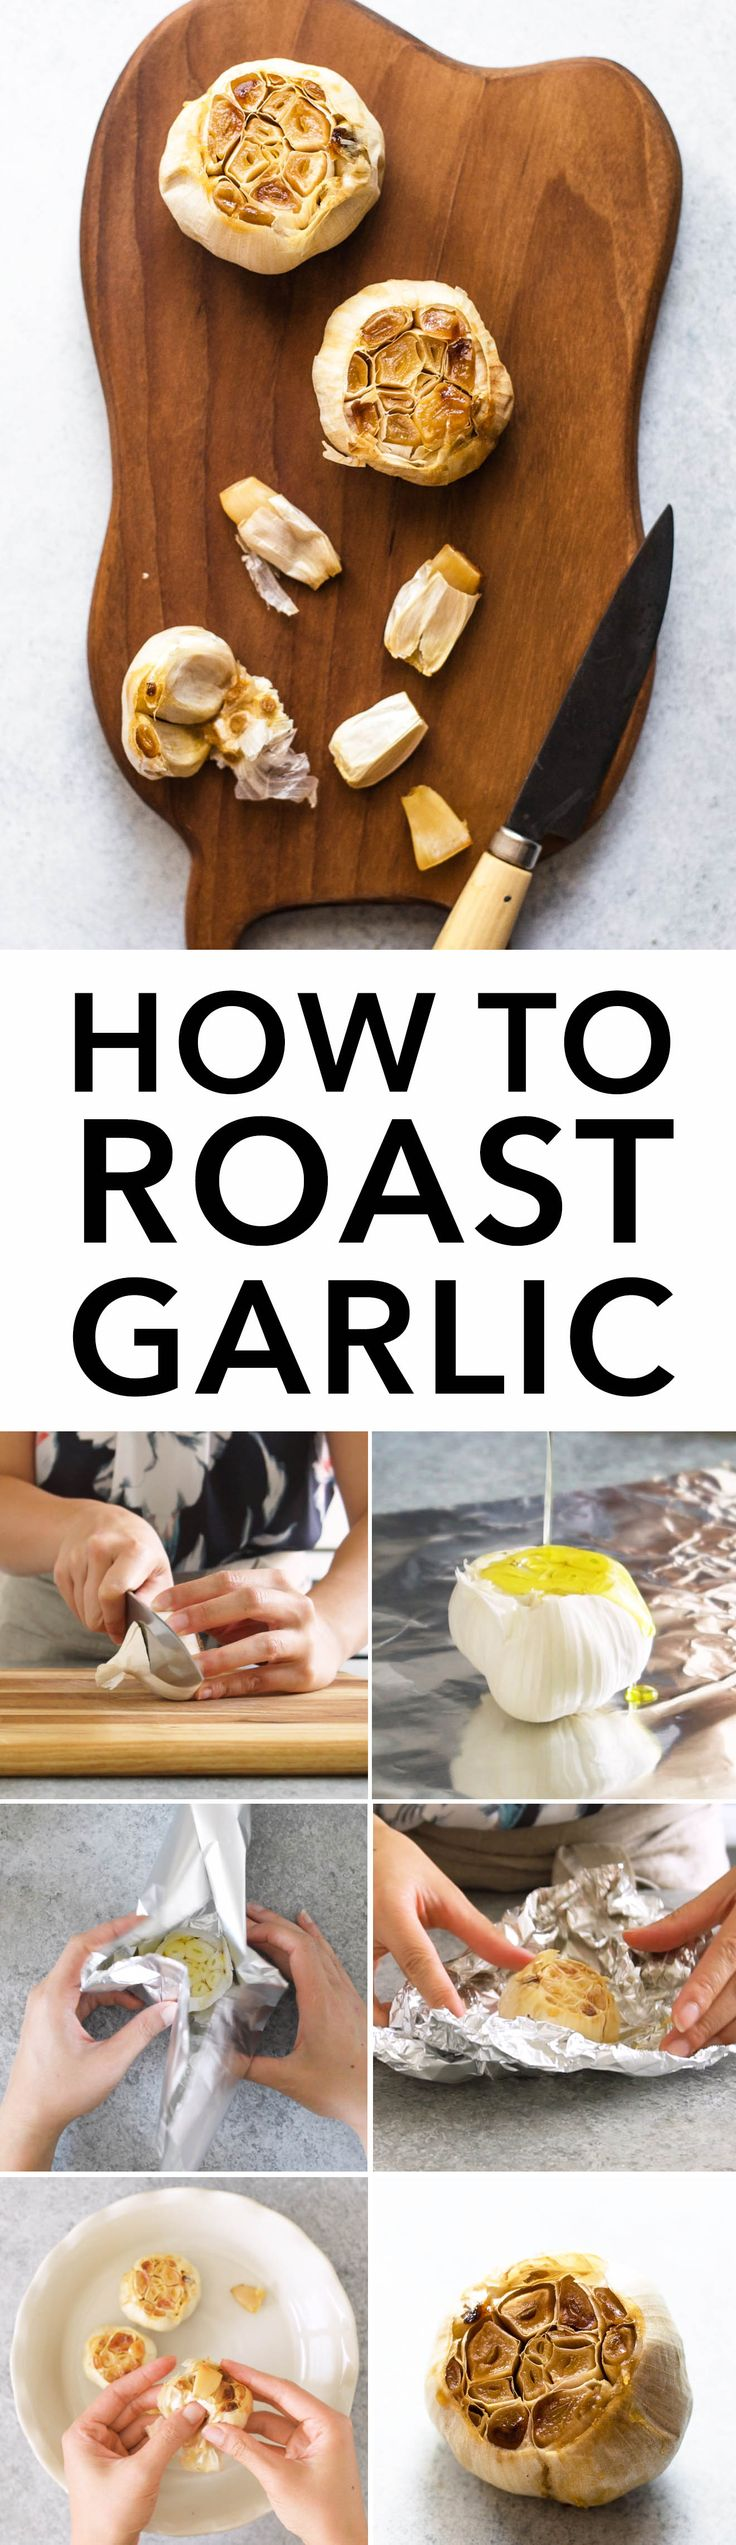 VIDEO TUTORIAL on how to roast garlic. Roasted garlic is great with roasted vegetables or mixed in dressings and hummus!